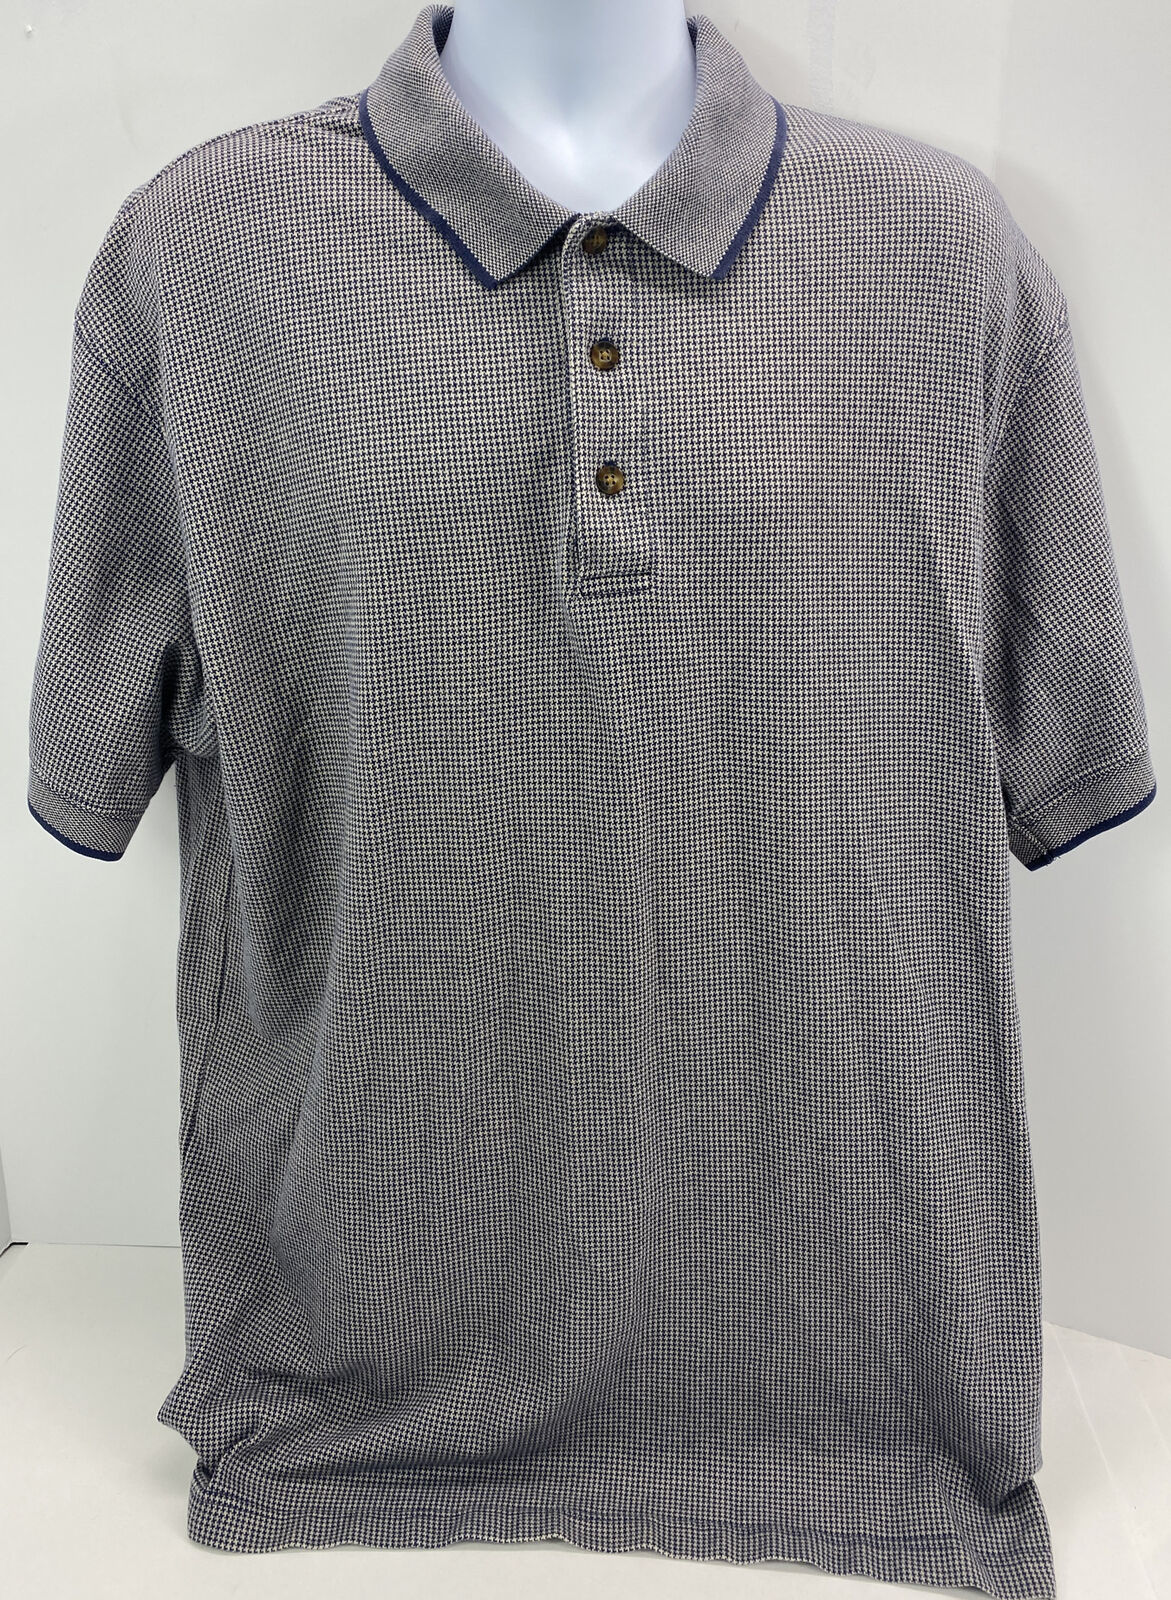 Woolrich John Rich and Bros Mens Size XL Tall Pol… - image 1